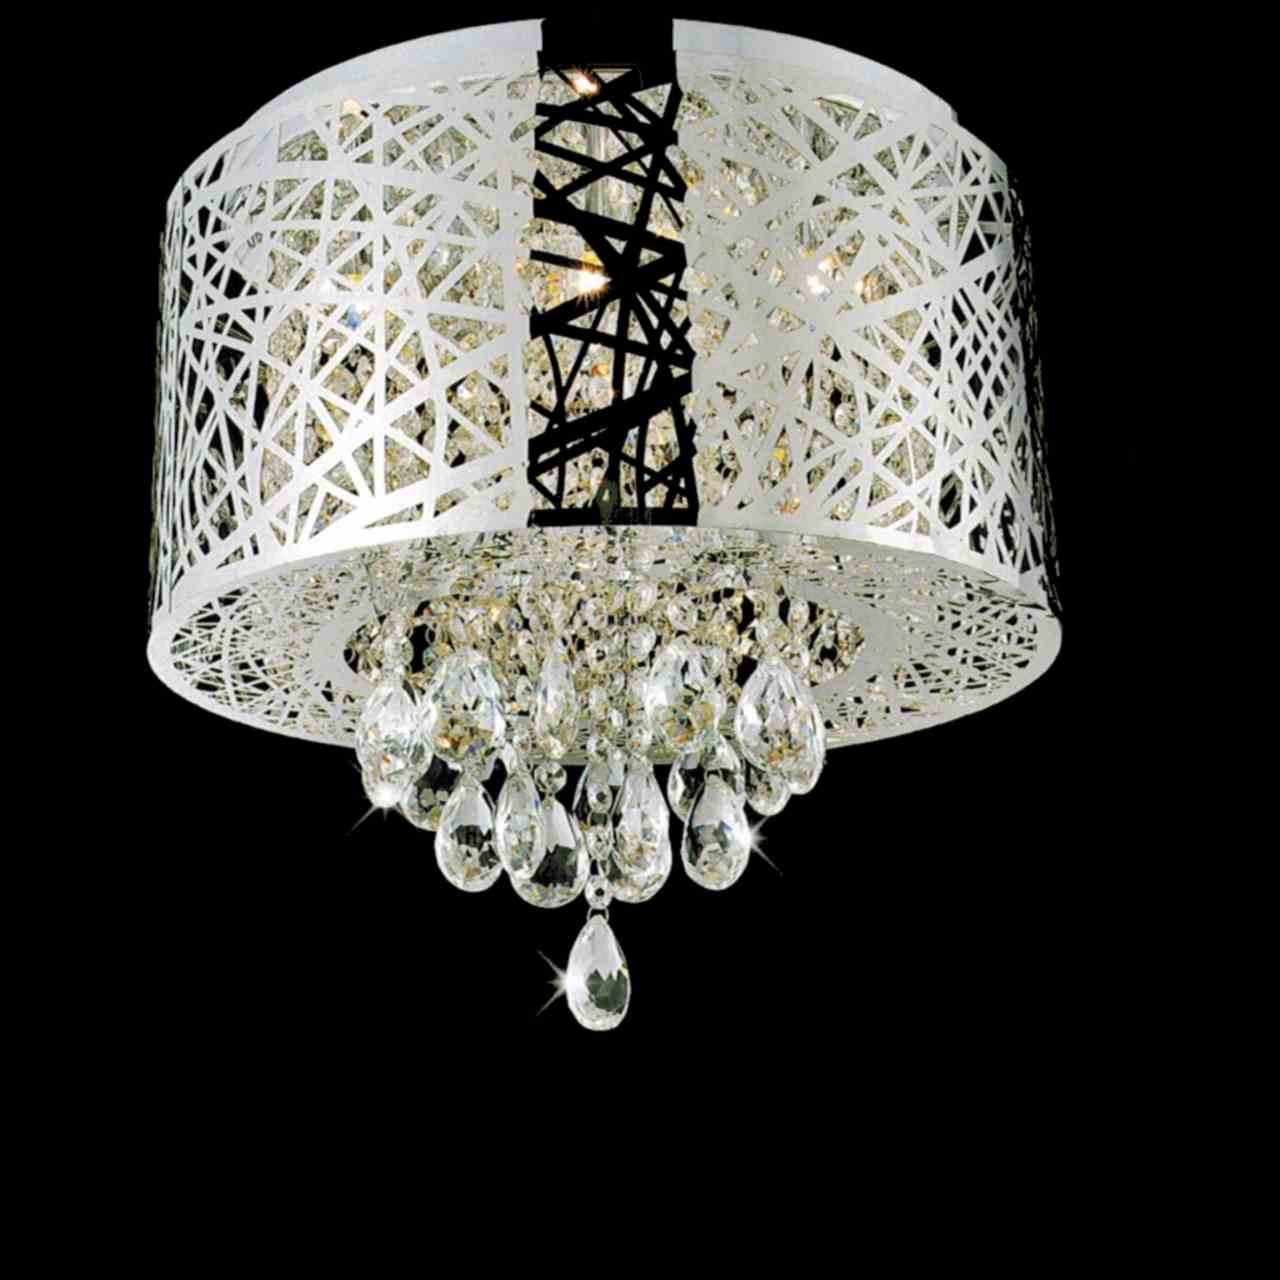 light lighting mount flush pendant dp lights home ceiling amazon fixture drum ca chandeliers chandelier with modern elegant lightinthebox crystal